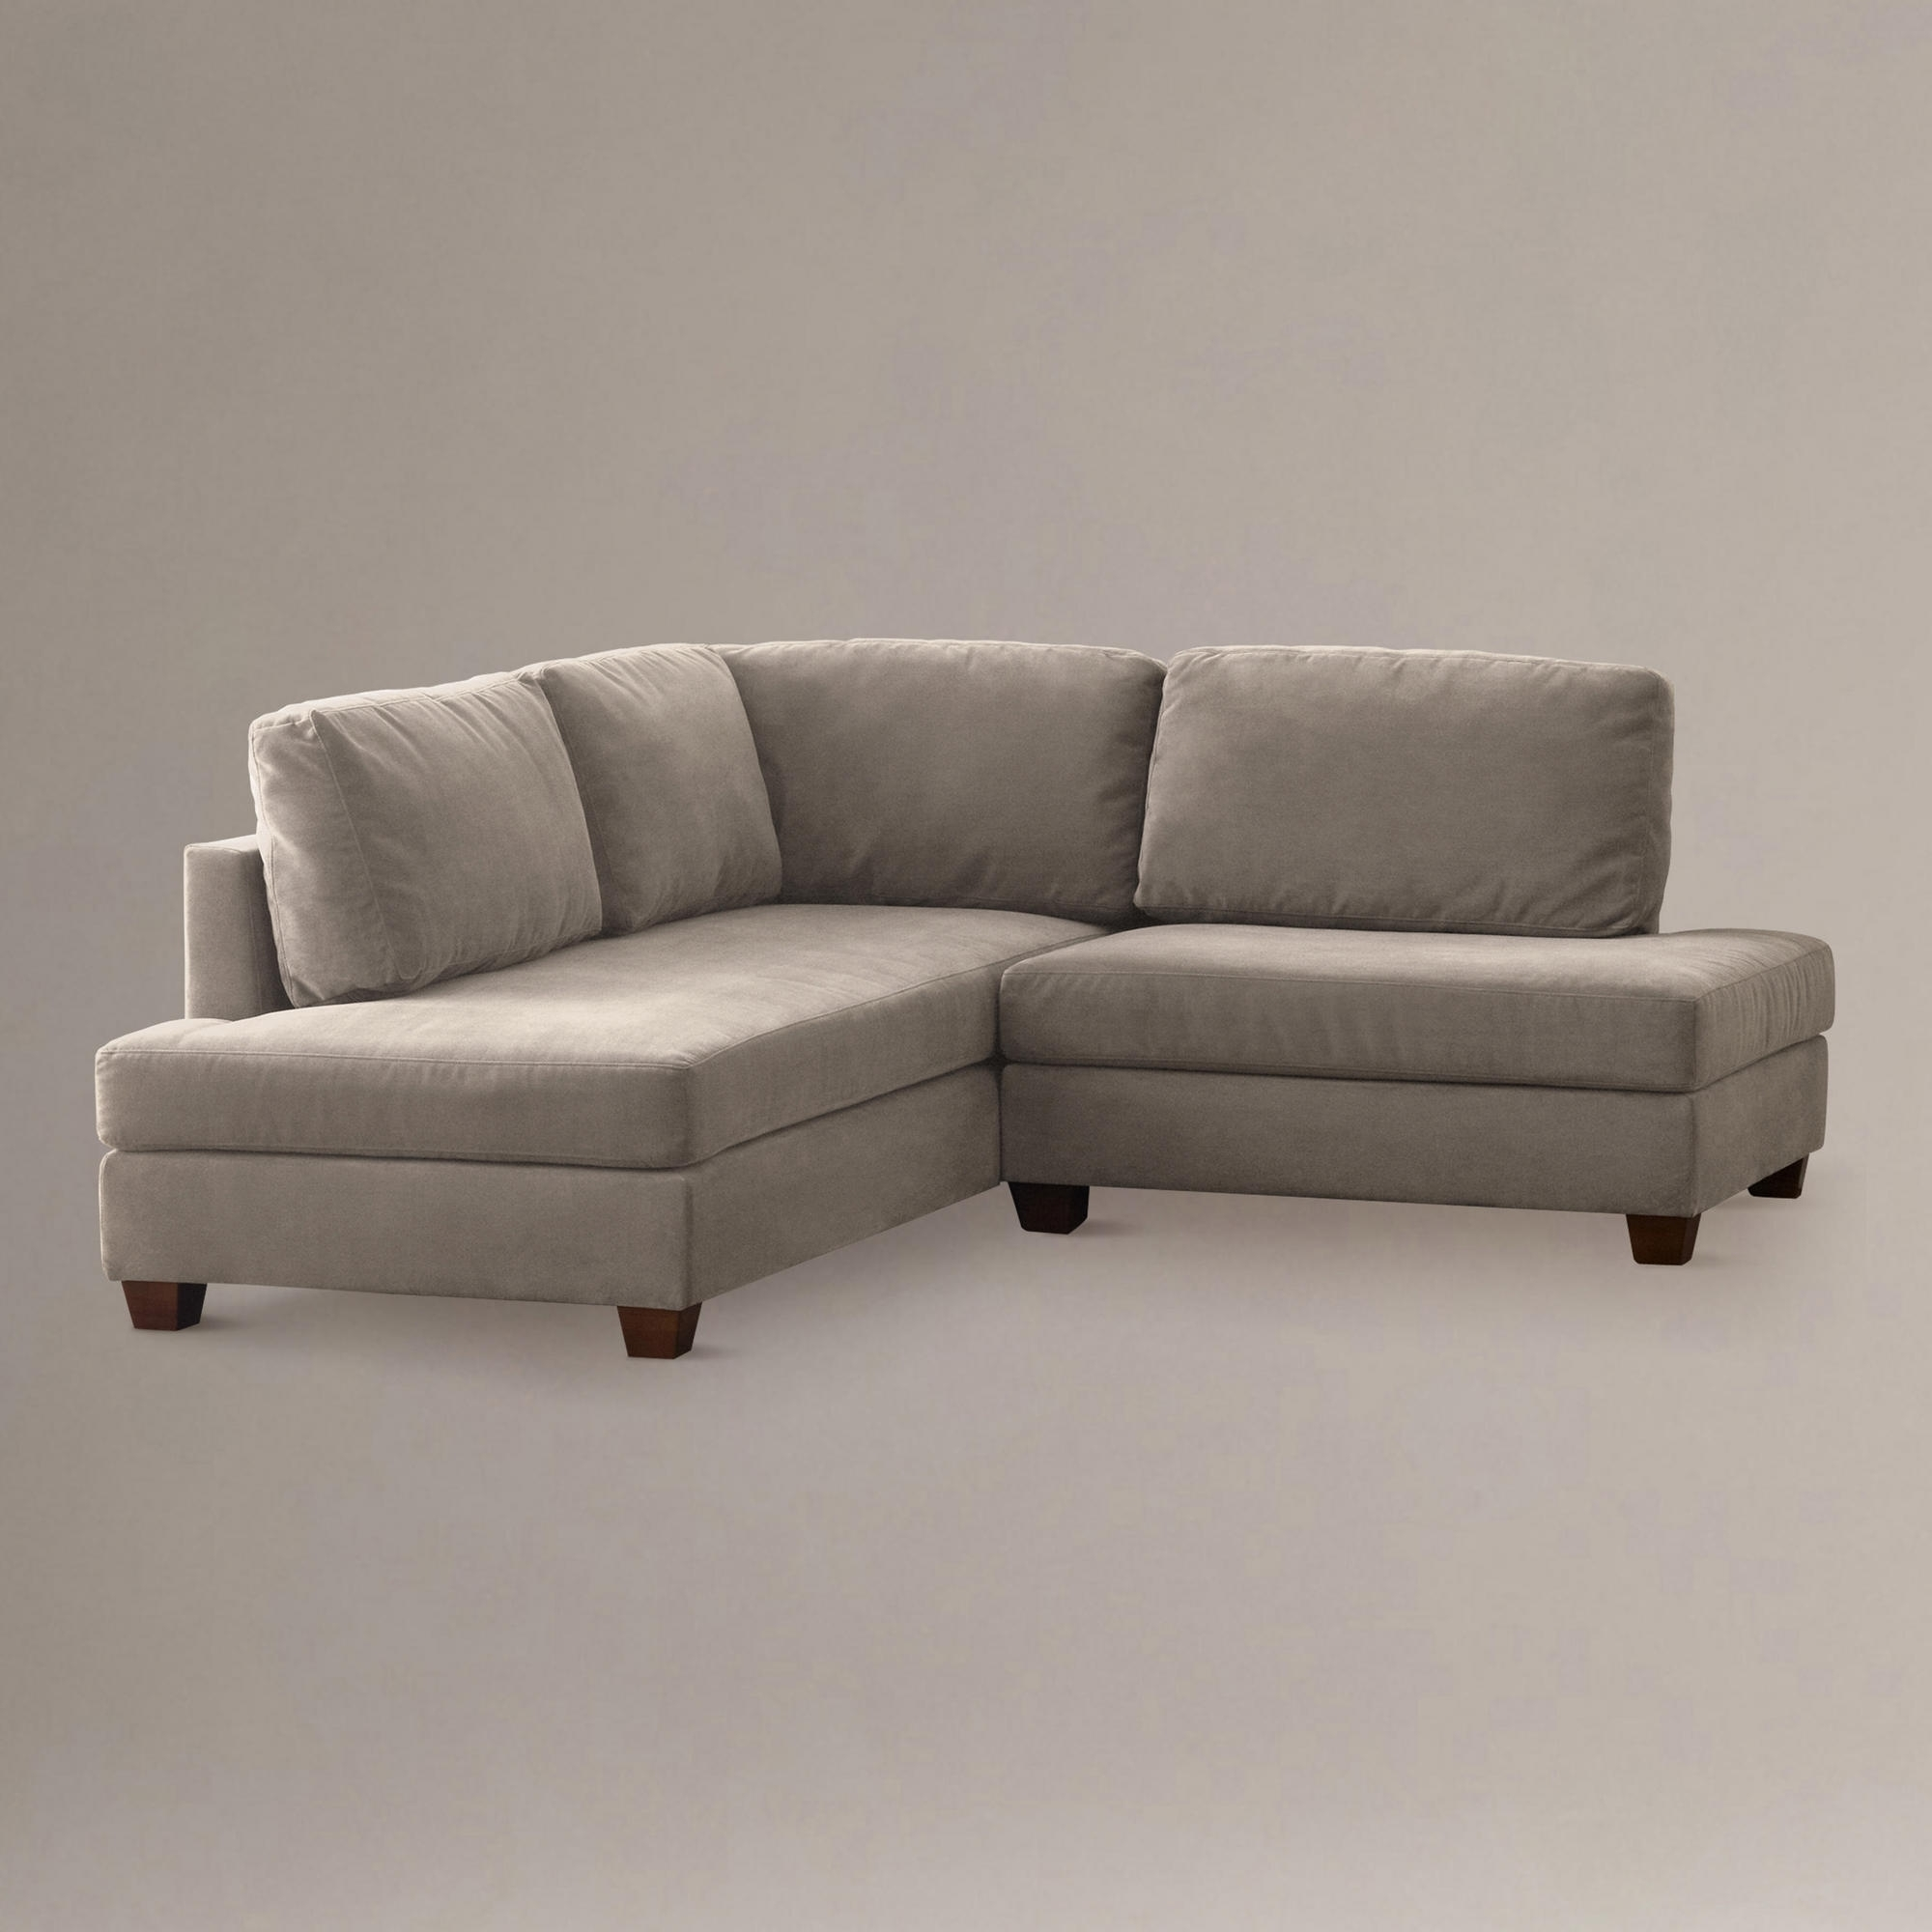 Widely Used Armless Sectional Sofas Throughout Amazing Armless Sectional Sofas Small Spaces – Mediasupload (View 3 of 20)